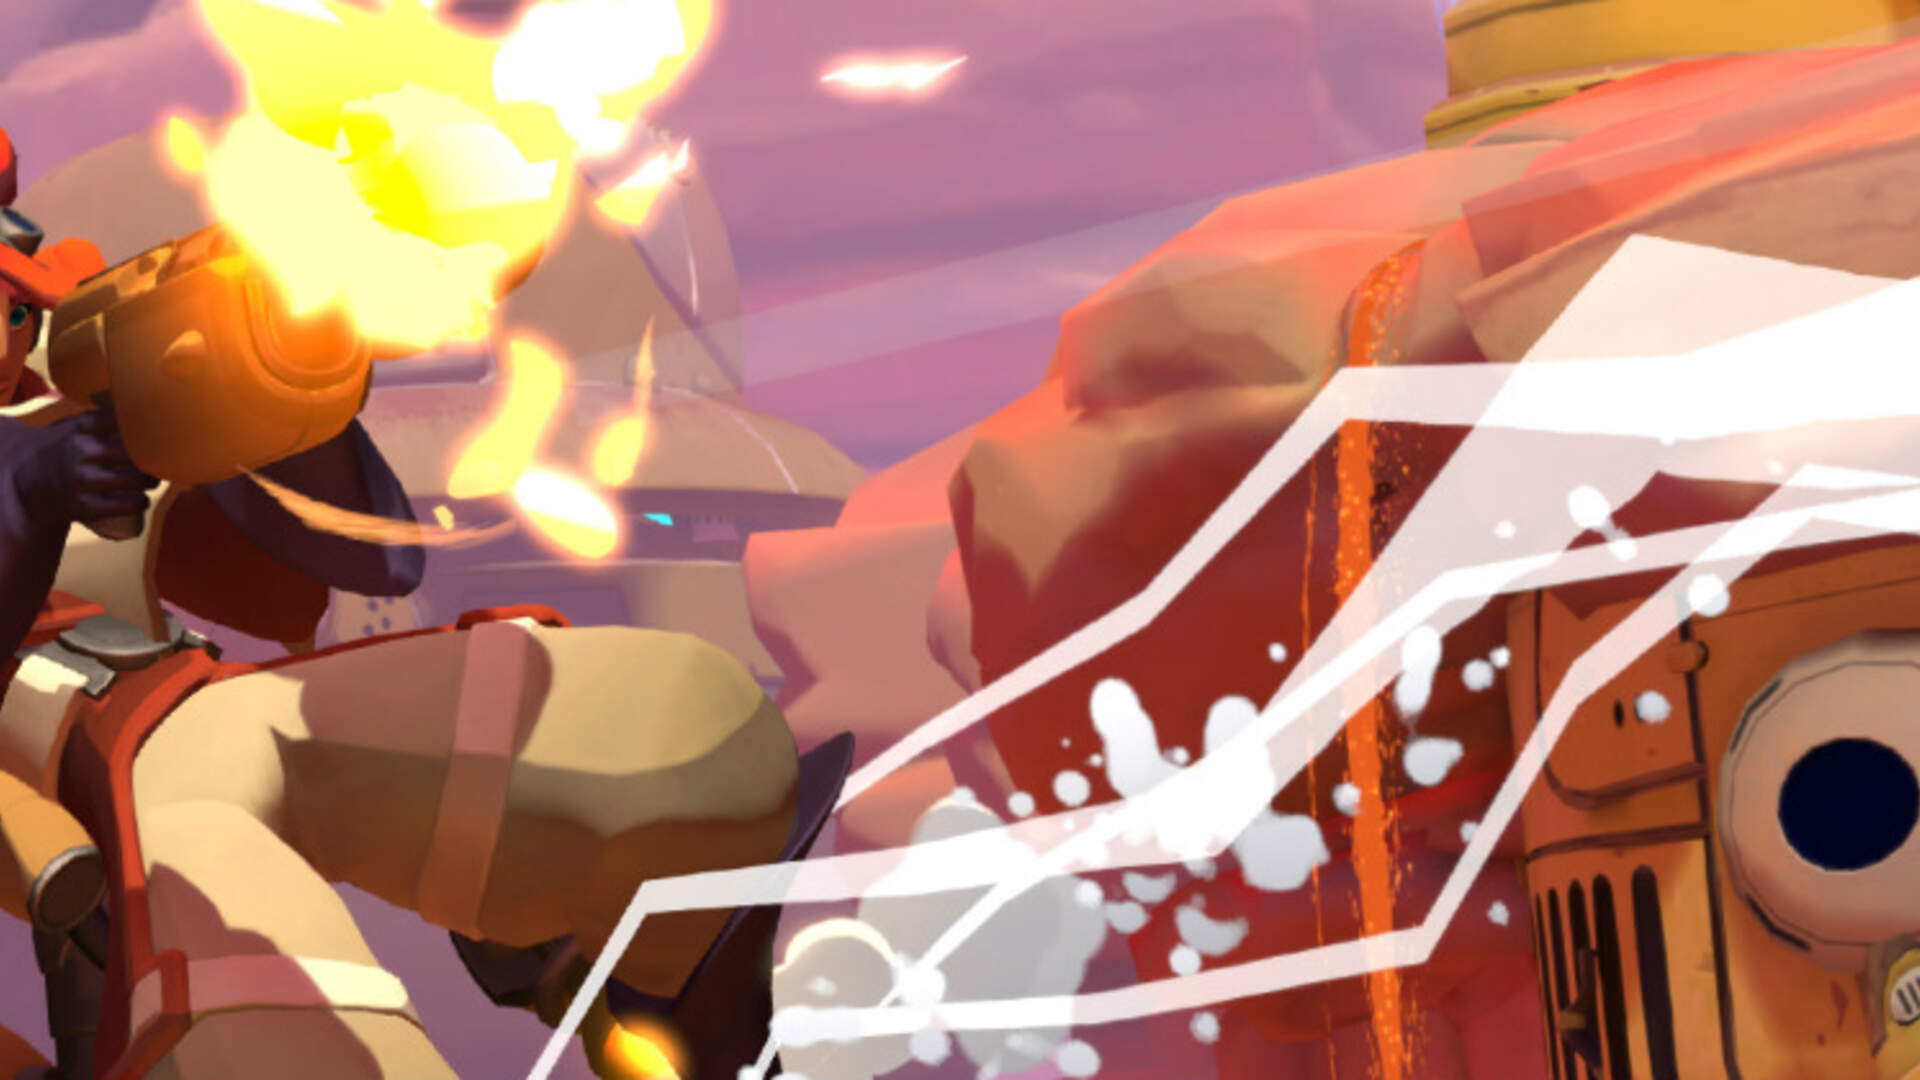 Gigantic Finds a New Publishing Partner in Perfect World